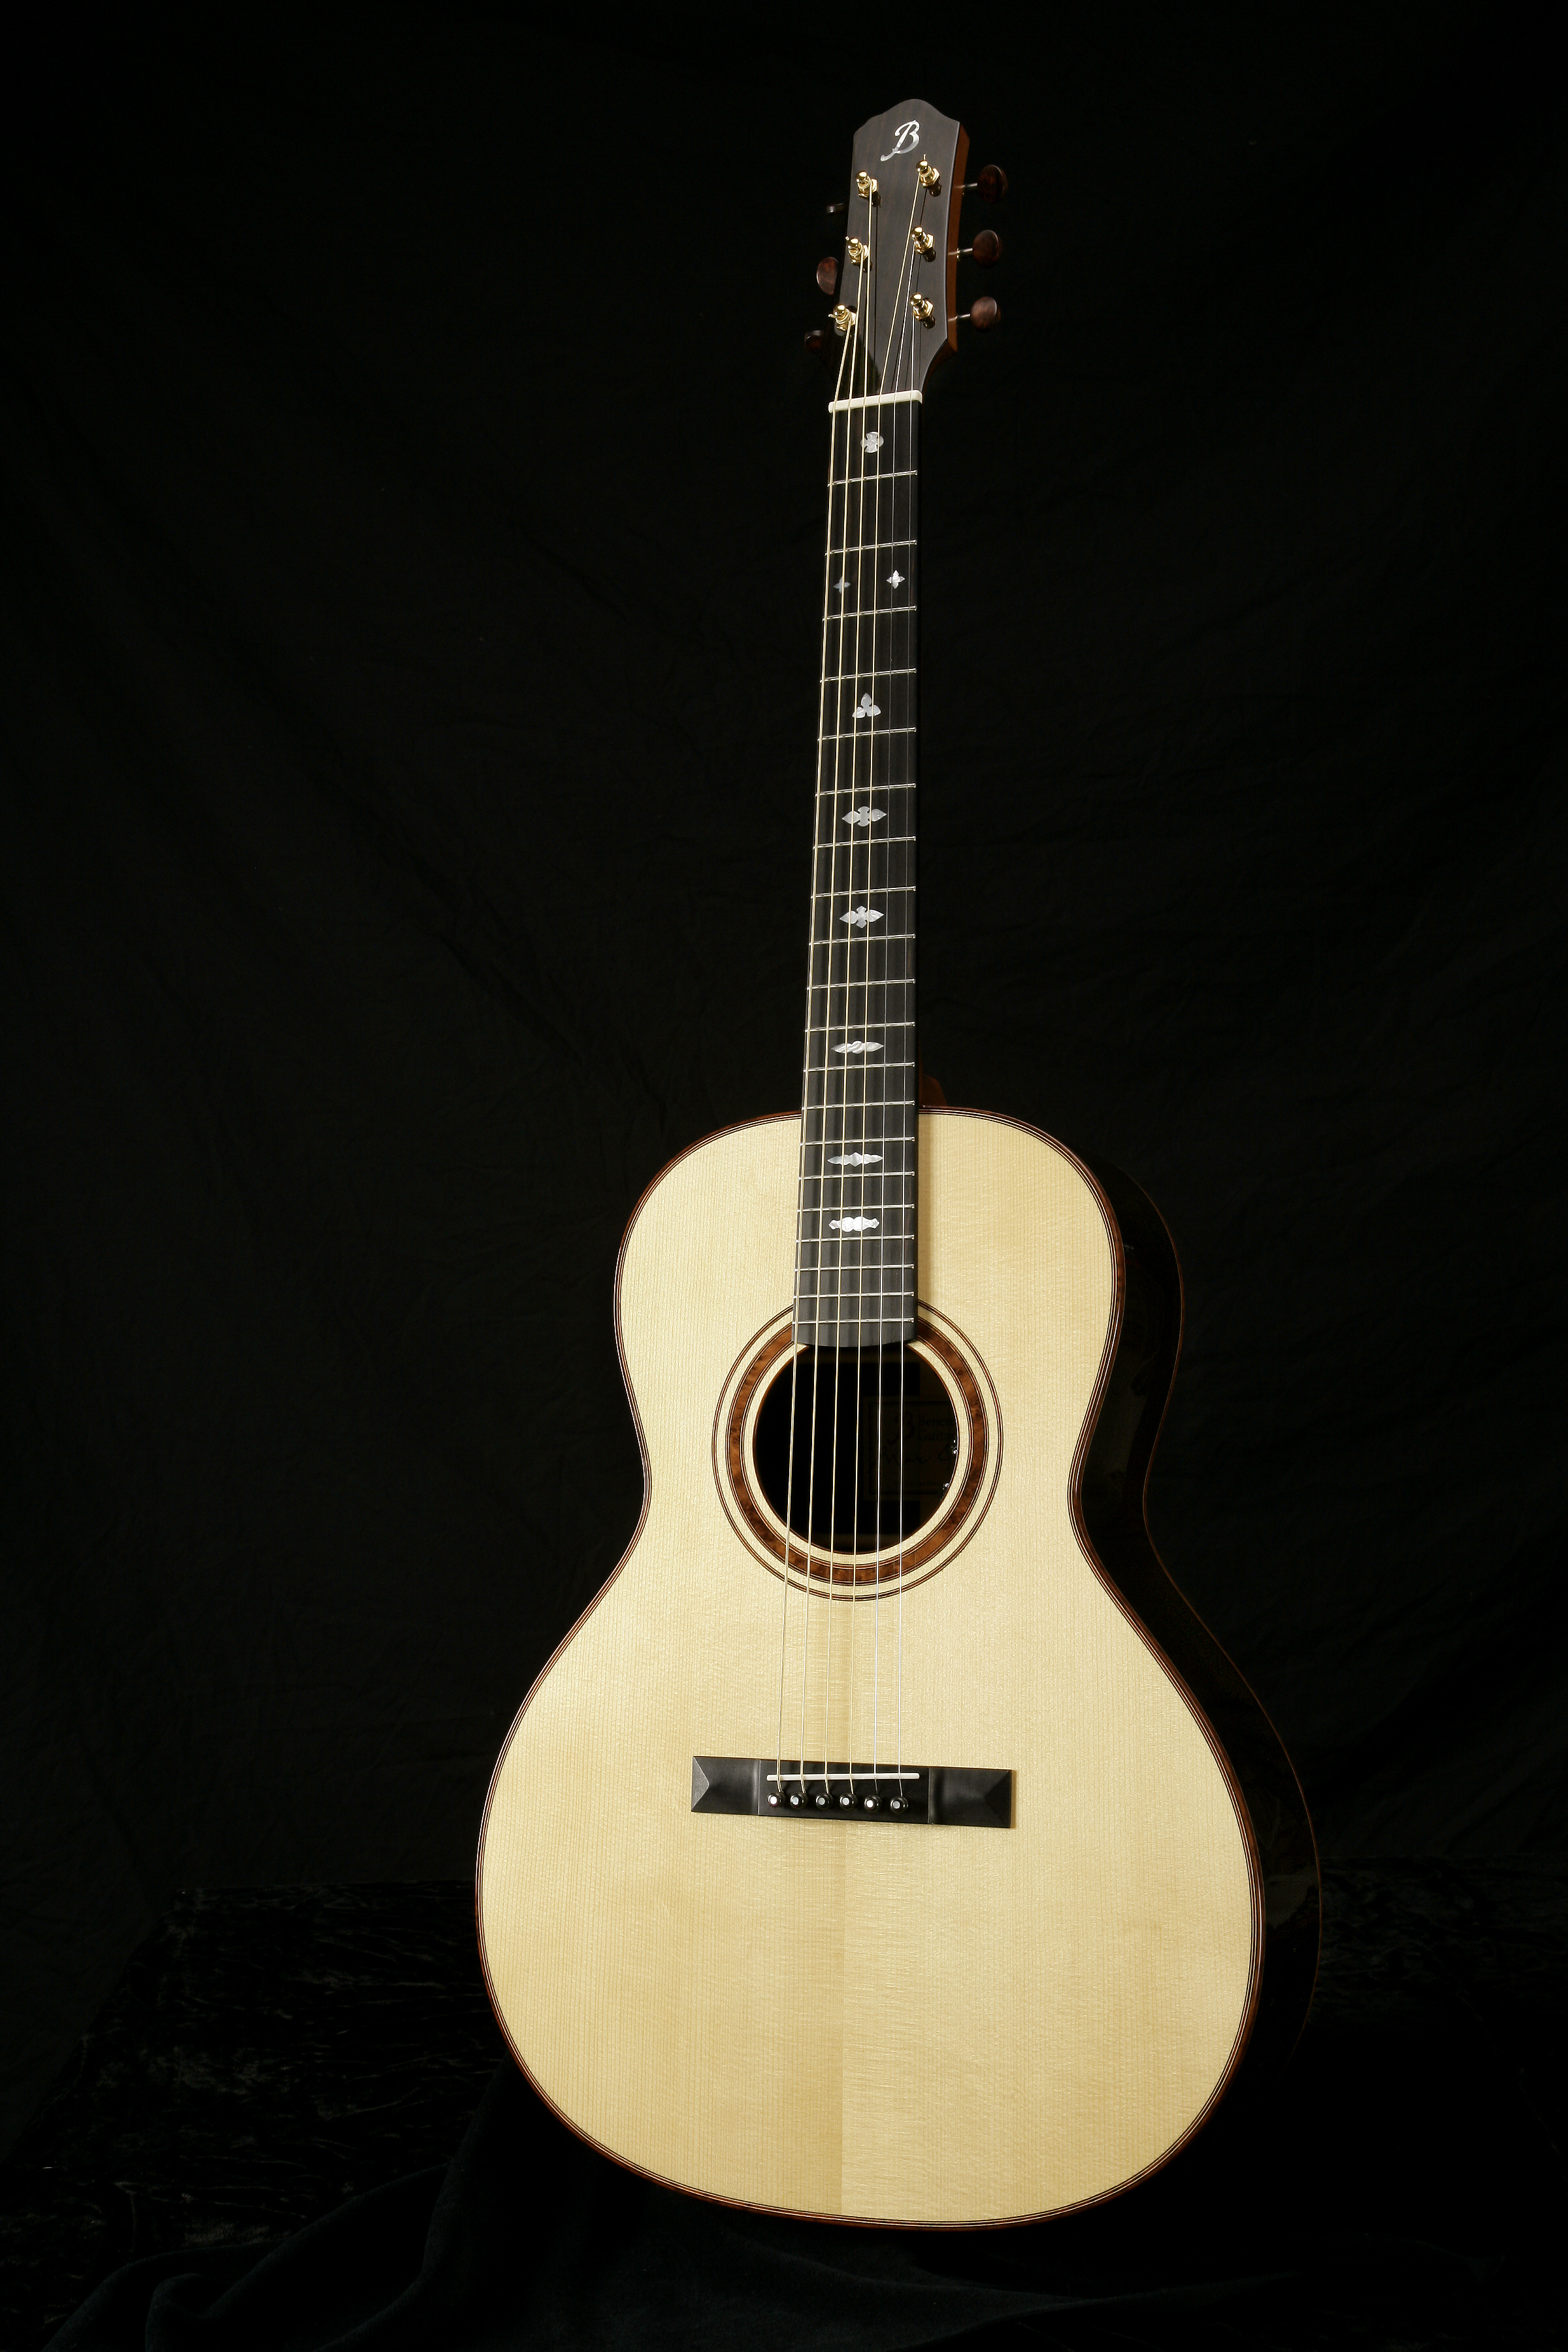 Nick Lucas - The guitar was developed in collaboration between the Gibson Guitar Company and Nick Lucas, a popular singer and guitarist of the 1920s and 1930s.This guitar is based on the Gibson L-00 size yet provides excellent volume and tone. Of particular interest is the unique